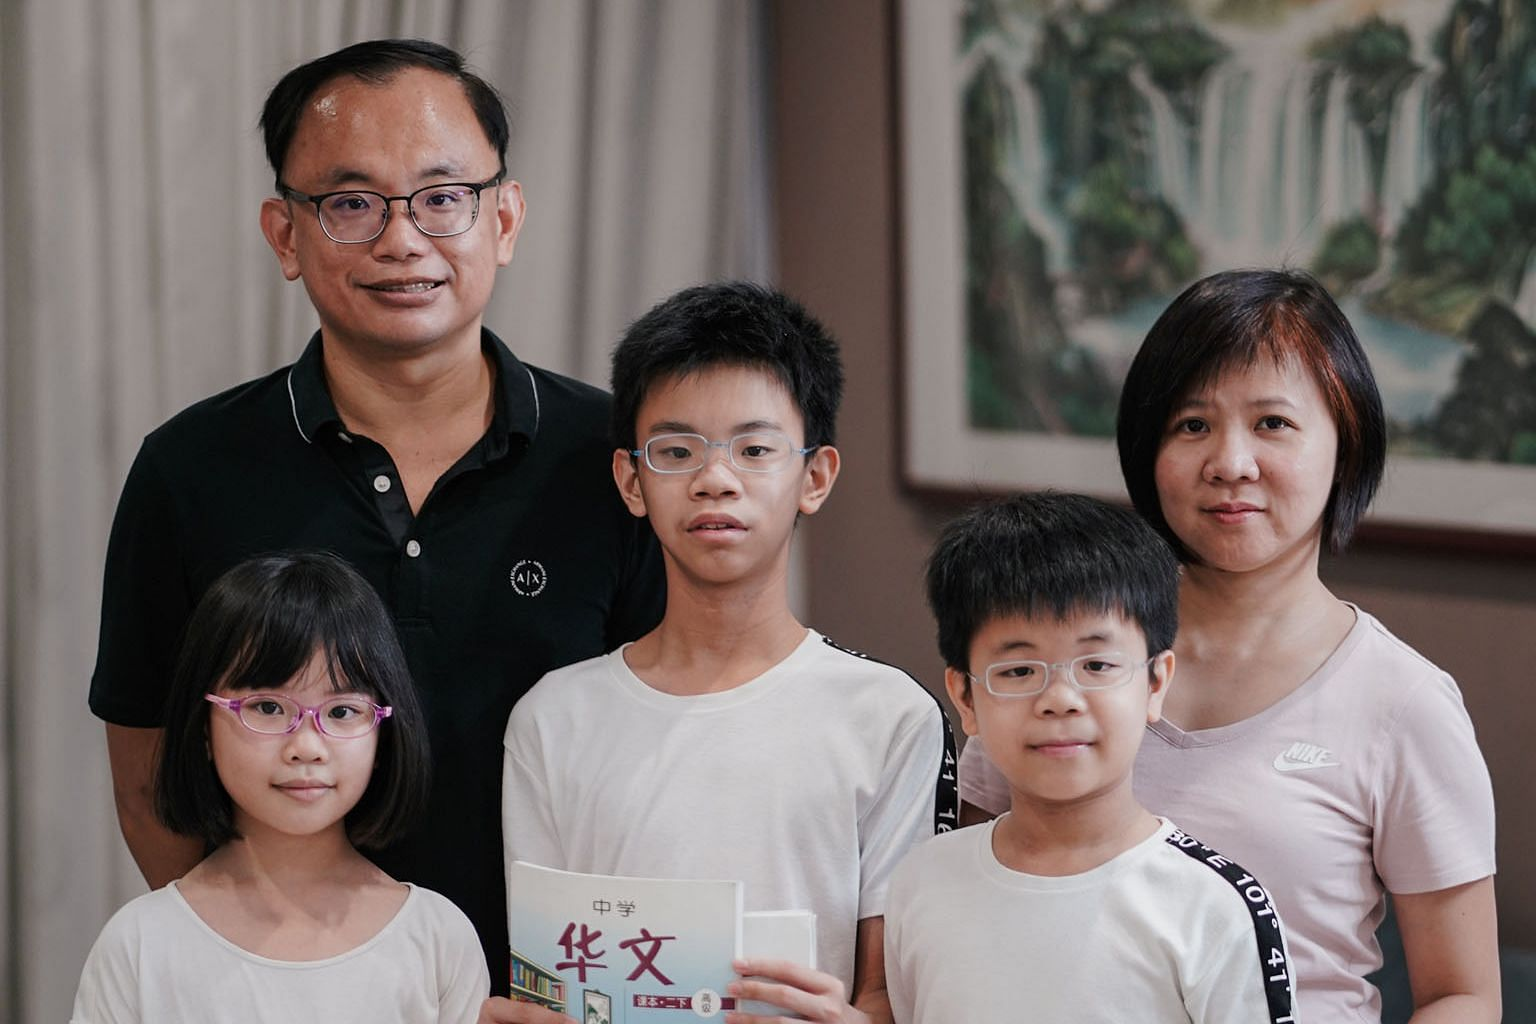 Mr Lim Wee Ming, 44, with his wife, Ms Koh Shin Nuo, 41, and their children (from far left) Nerelle, nine, Xavier, 14, and Iden, 11. Both Xavier and Iden are taking Higher Chinese in school.